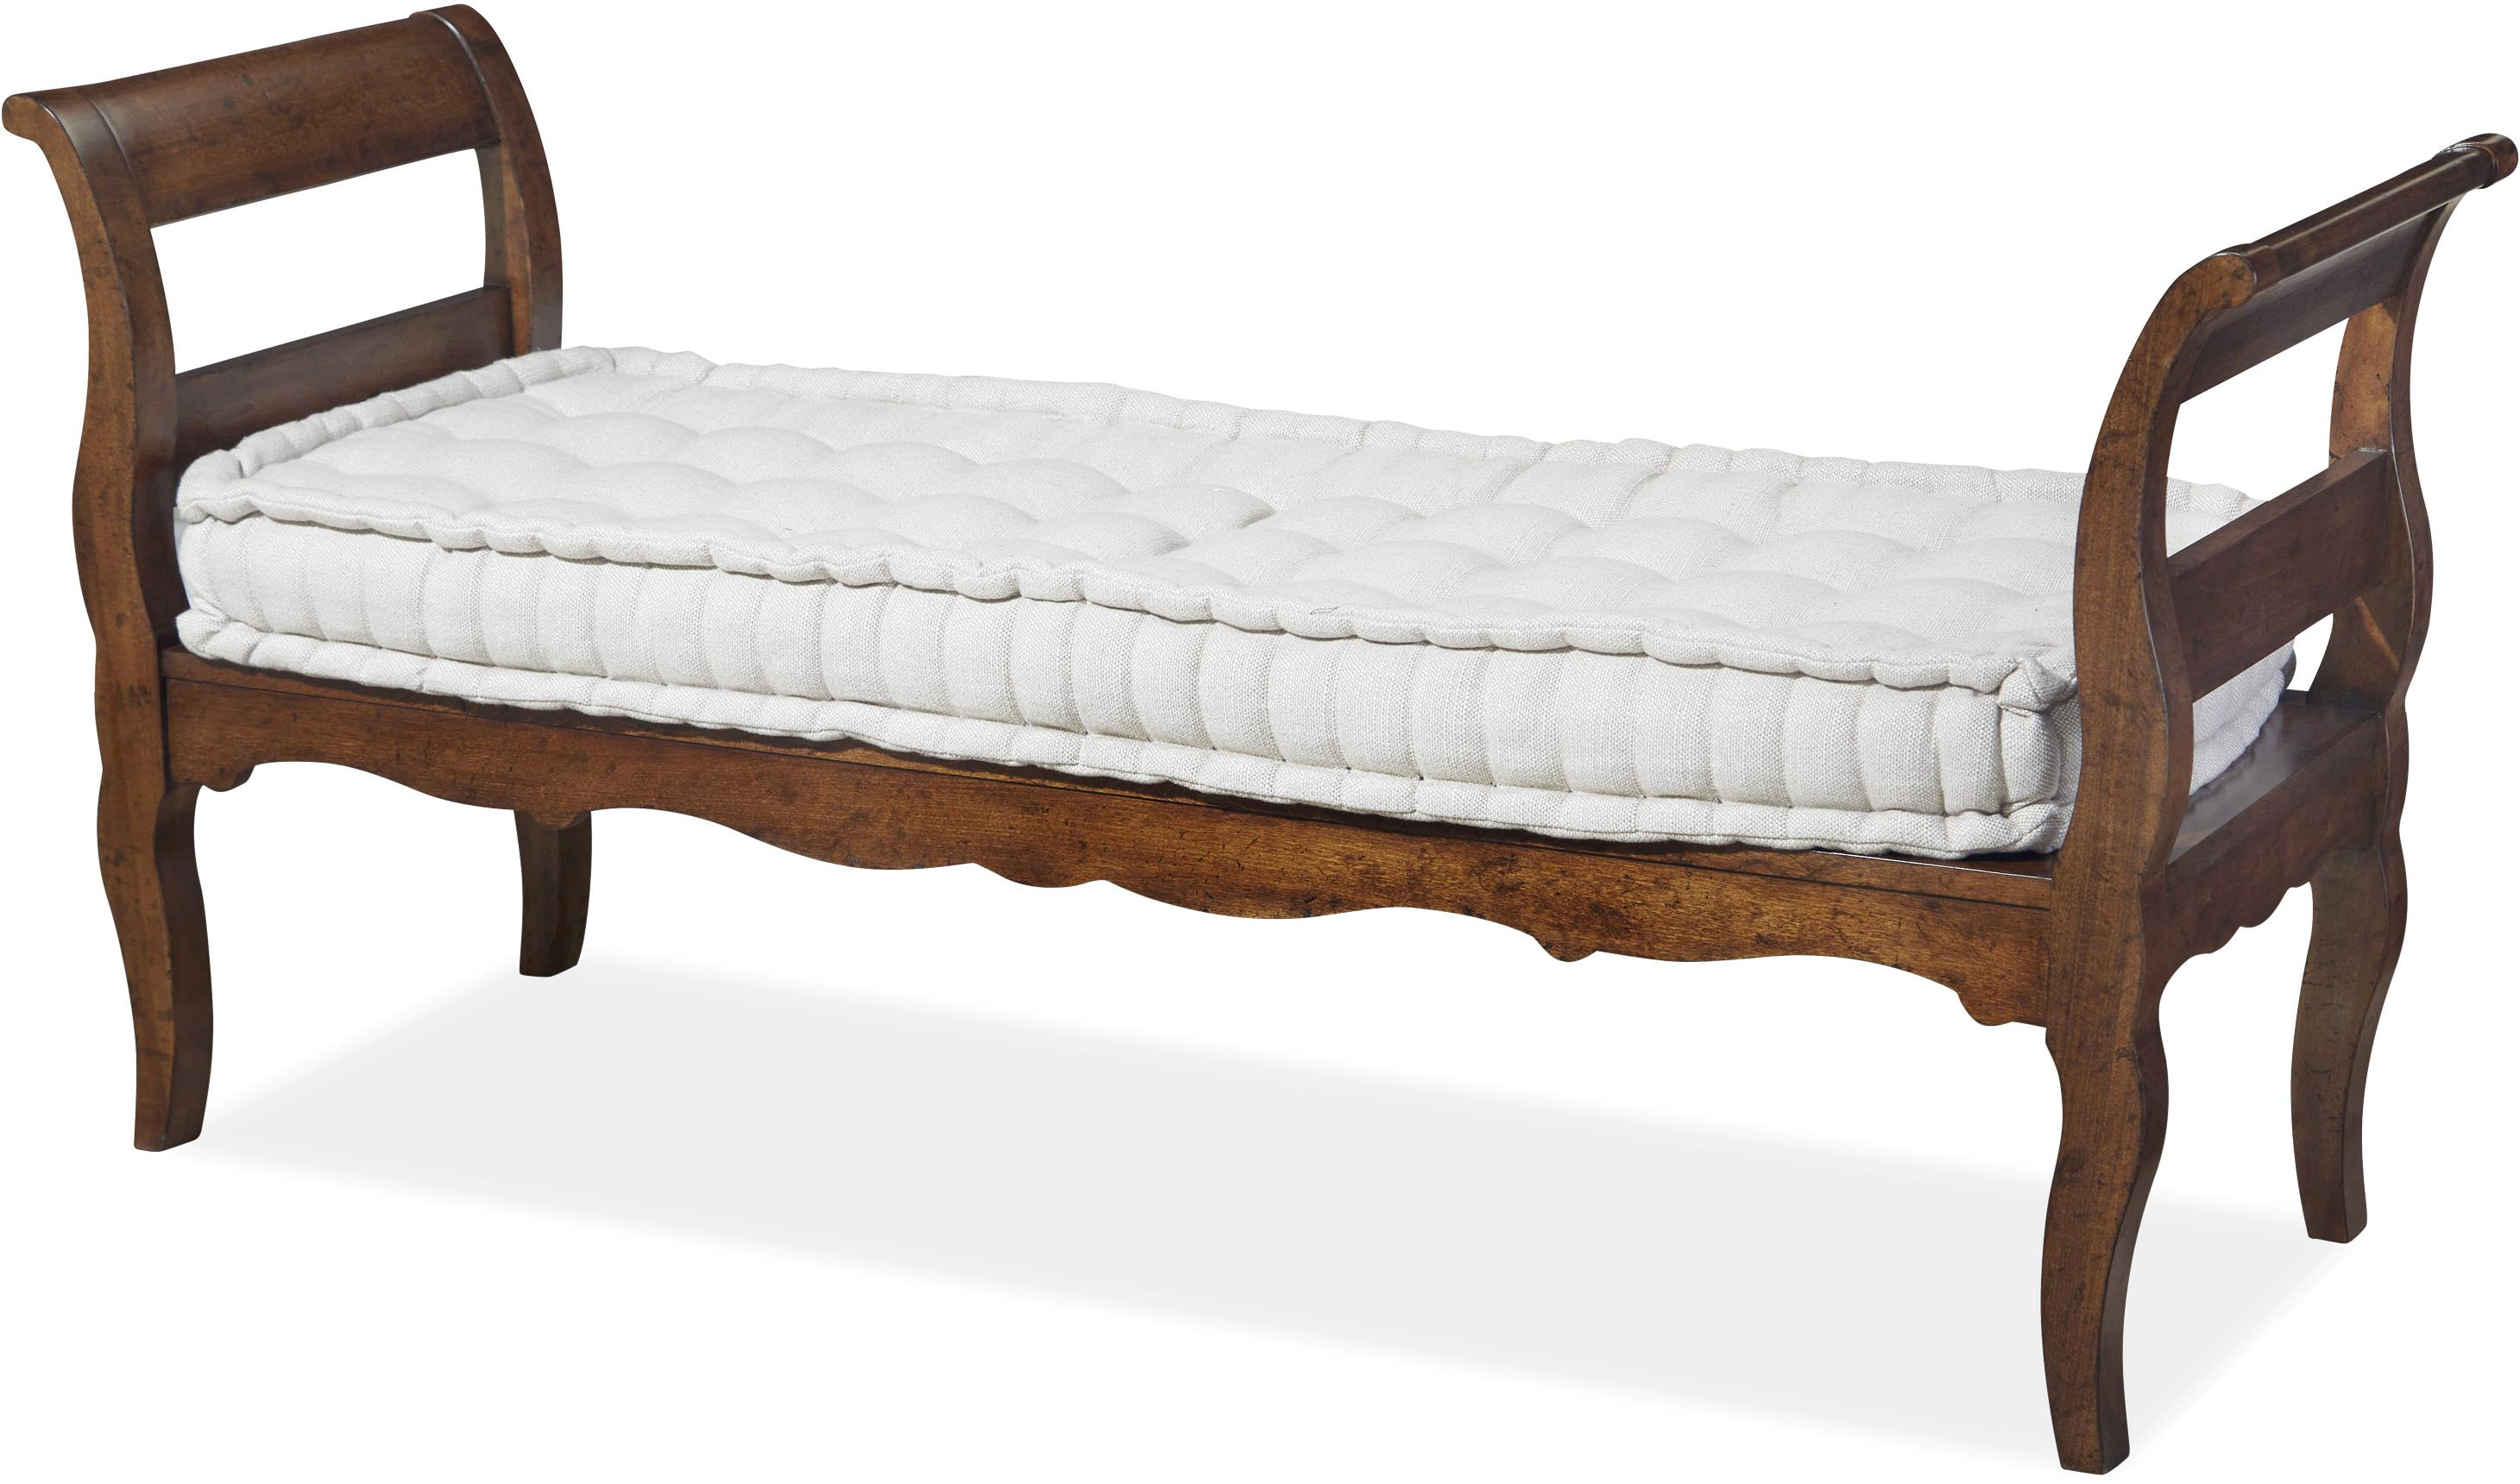 Bed End Bench With Tufted Seat By Paula Deen By Universal